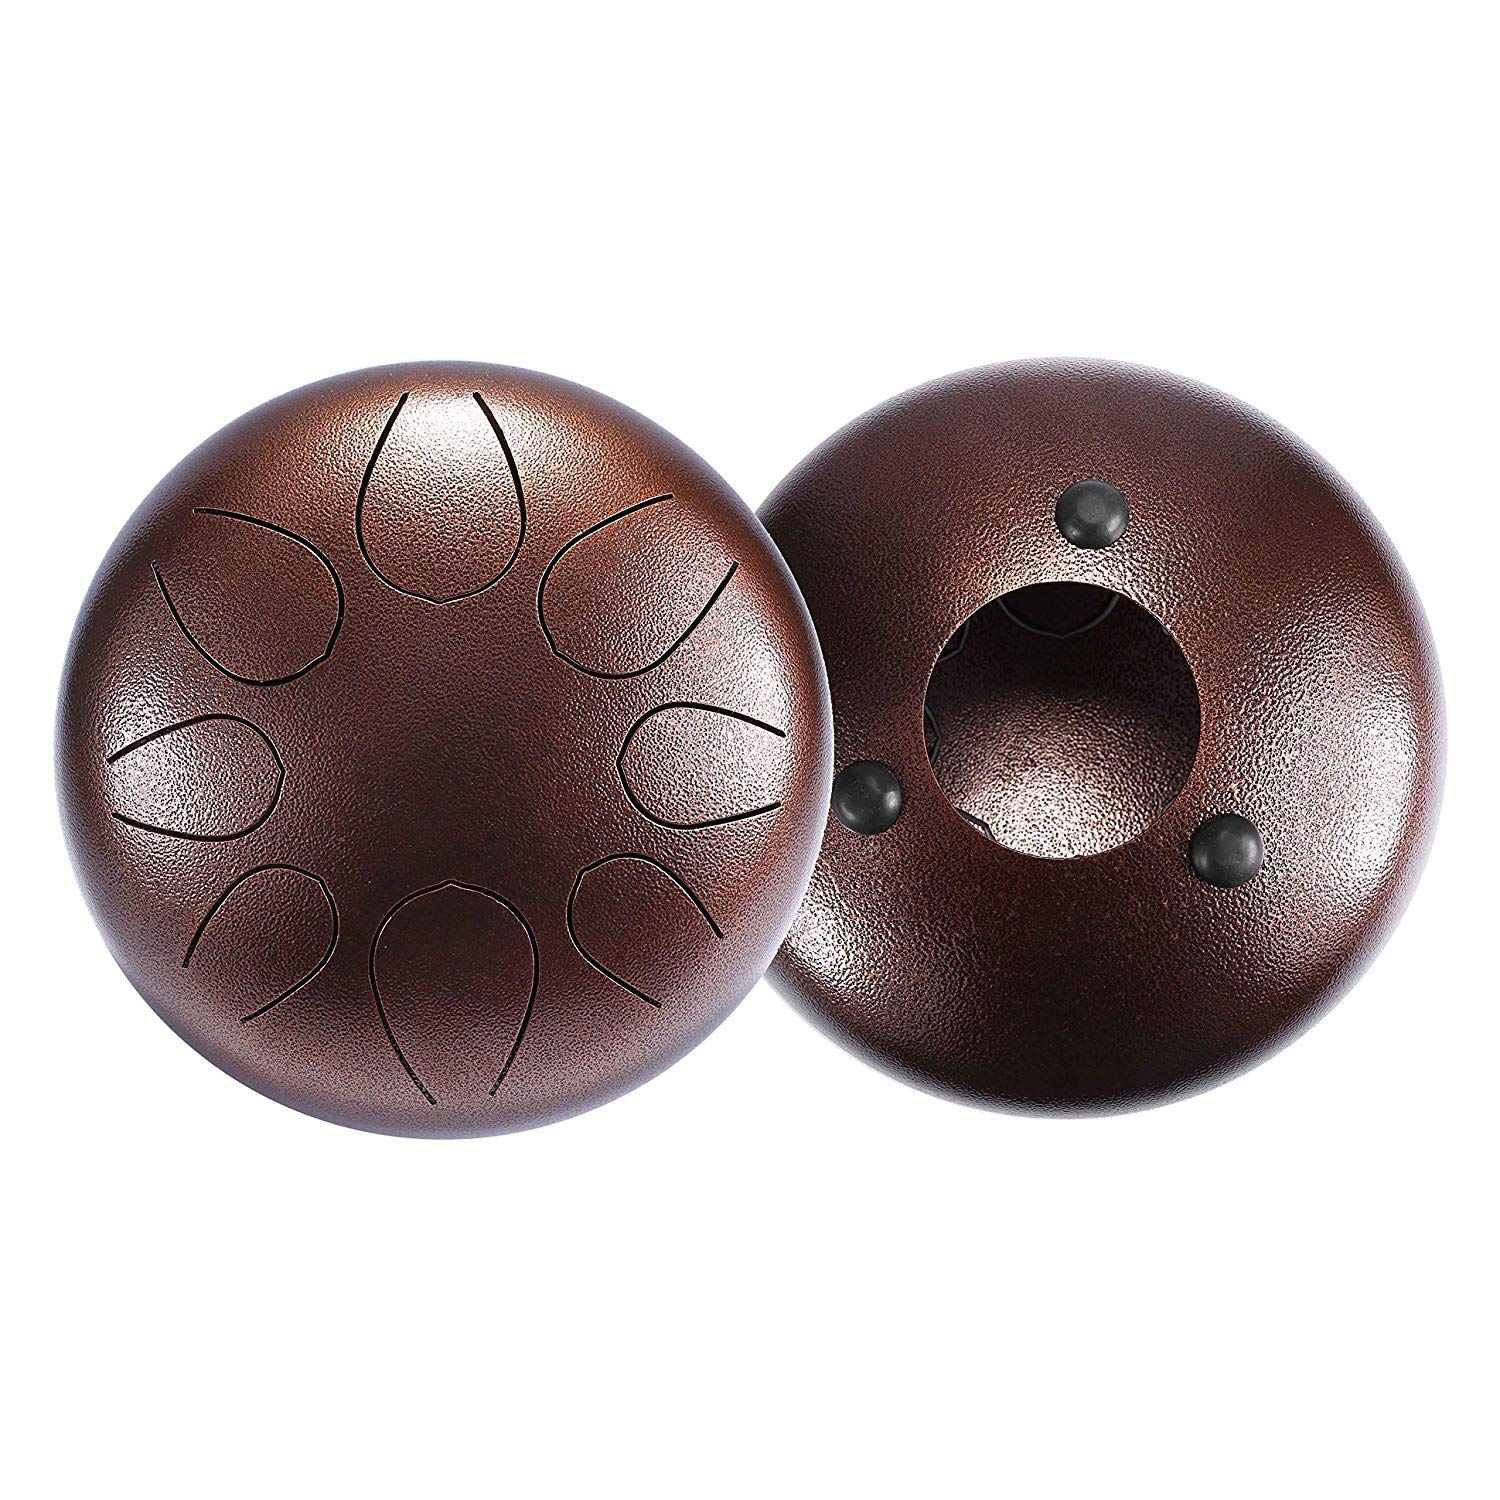 Asmuse 10 Inch 8 Notes Steel Tongue Drum Hand Drum Percussion Instrument with Padded Travel Bag for Meditation Yoga Zazen Sound Healing